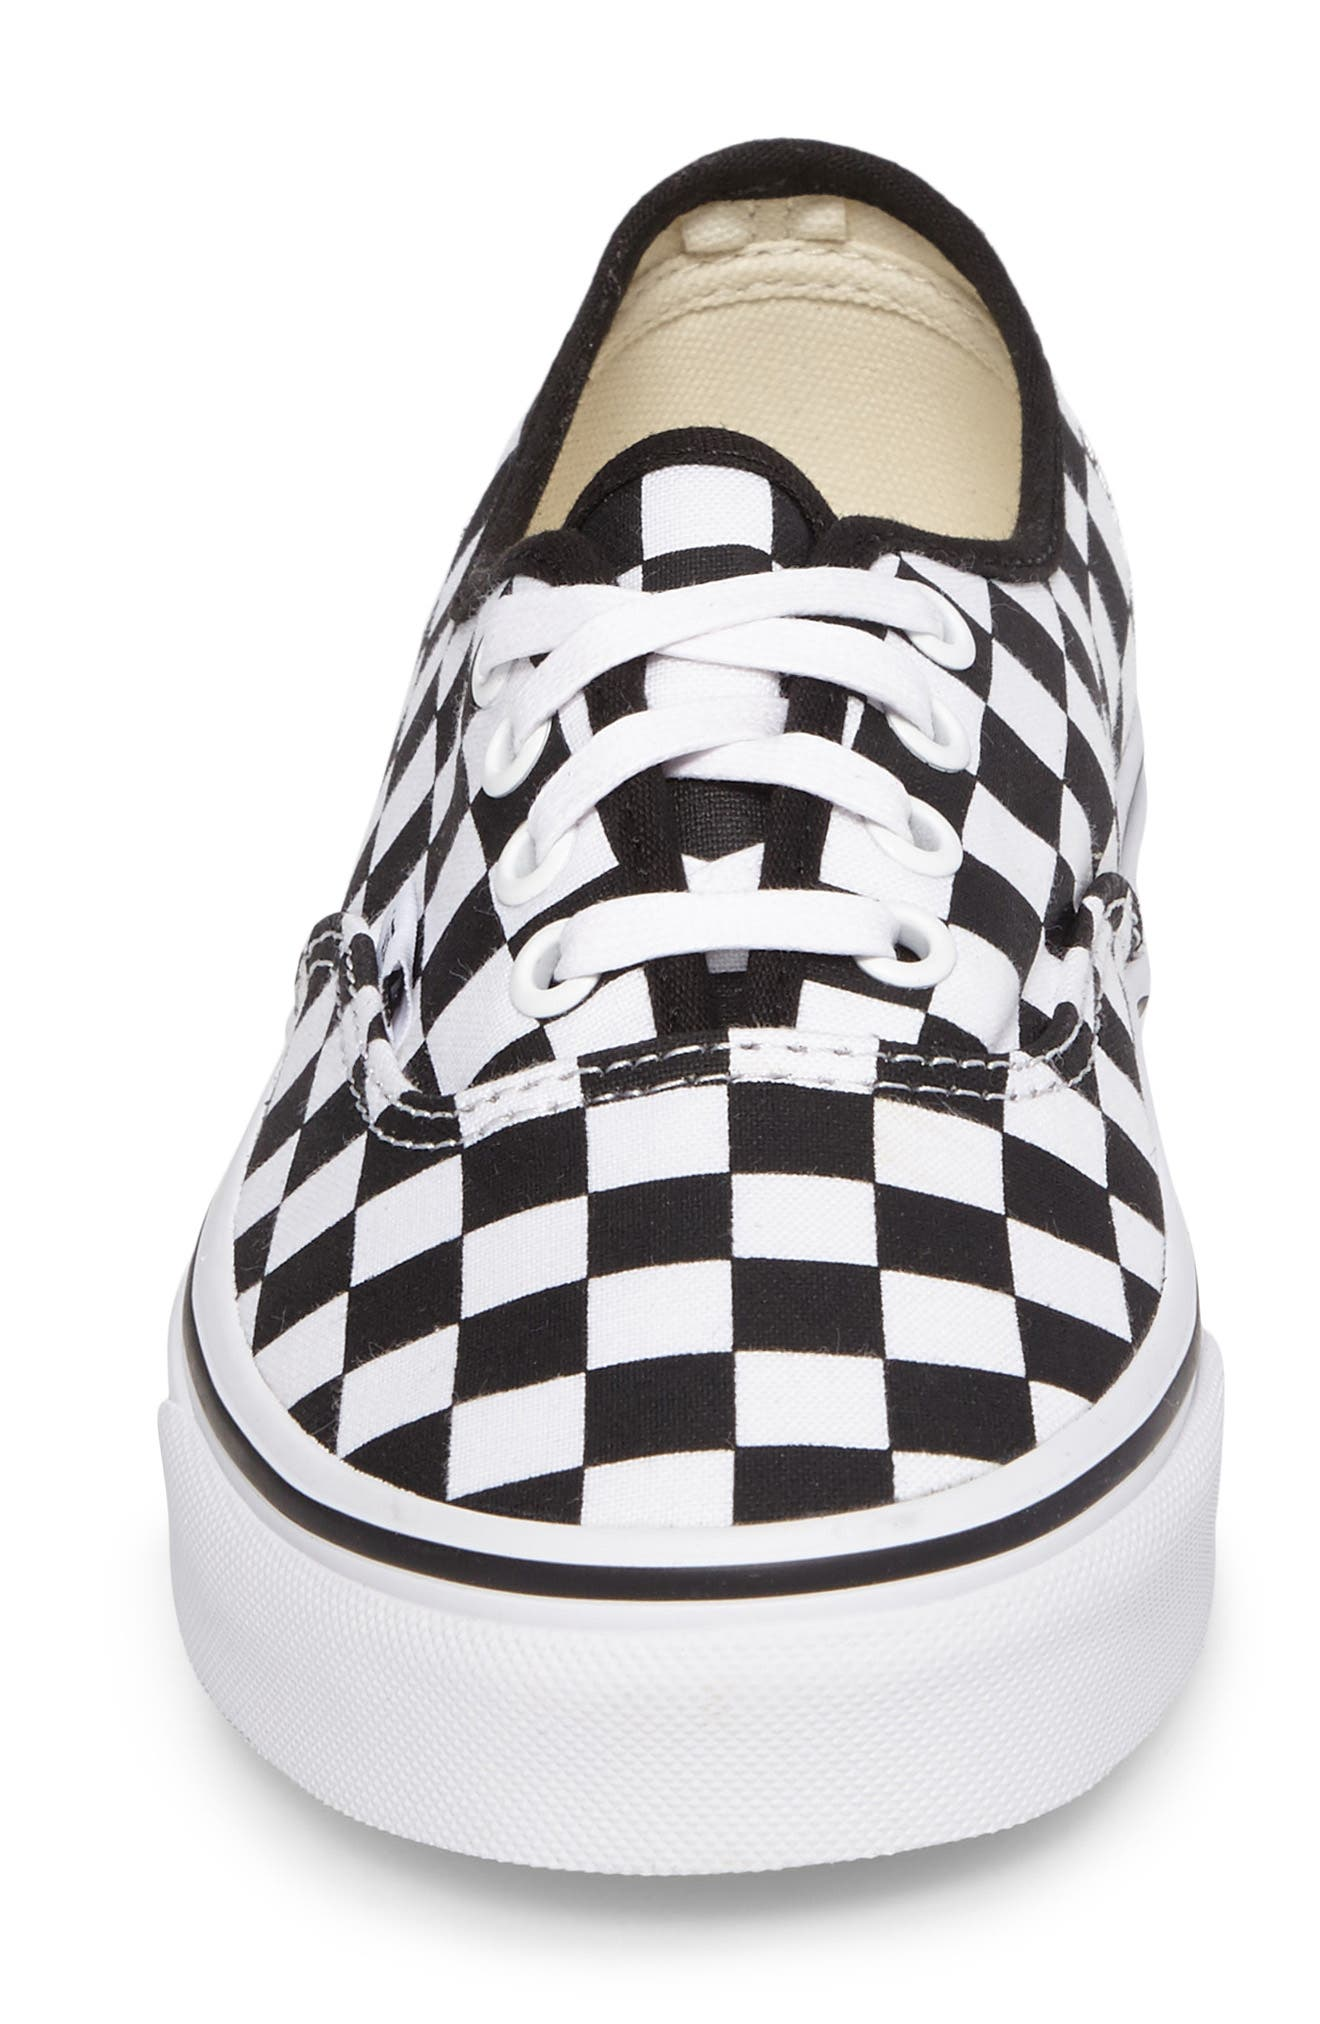 Alternate Image 4  - Vans 'Authentic' Sneaker (Women)